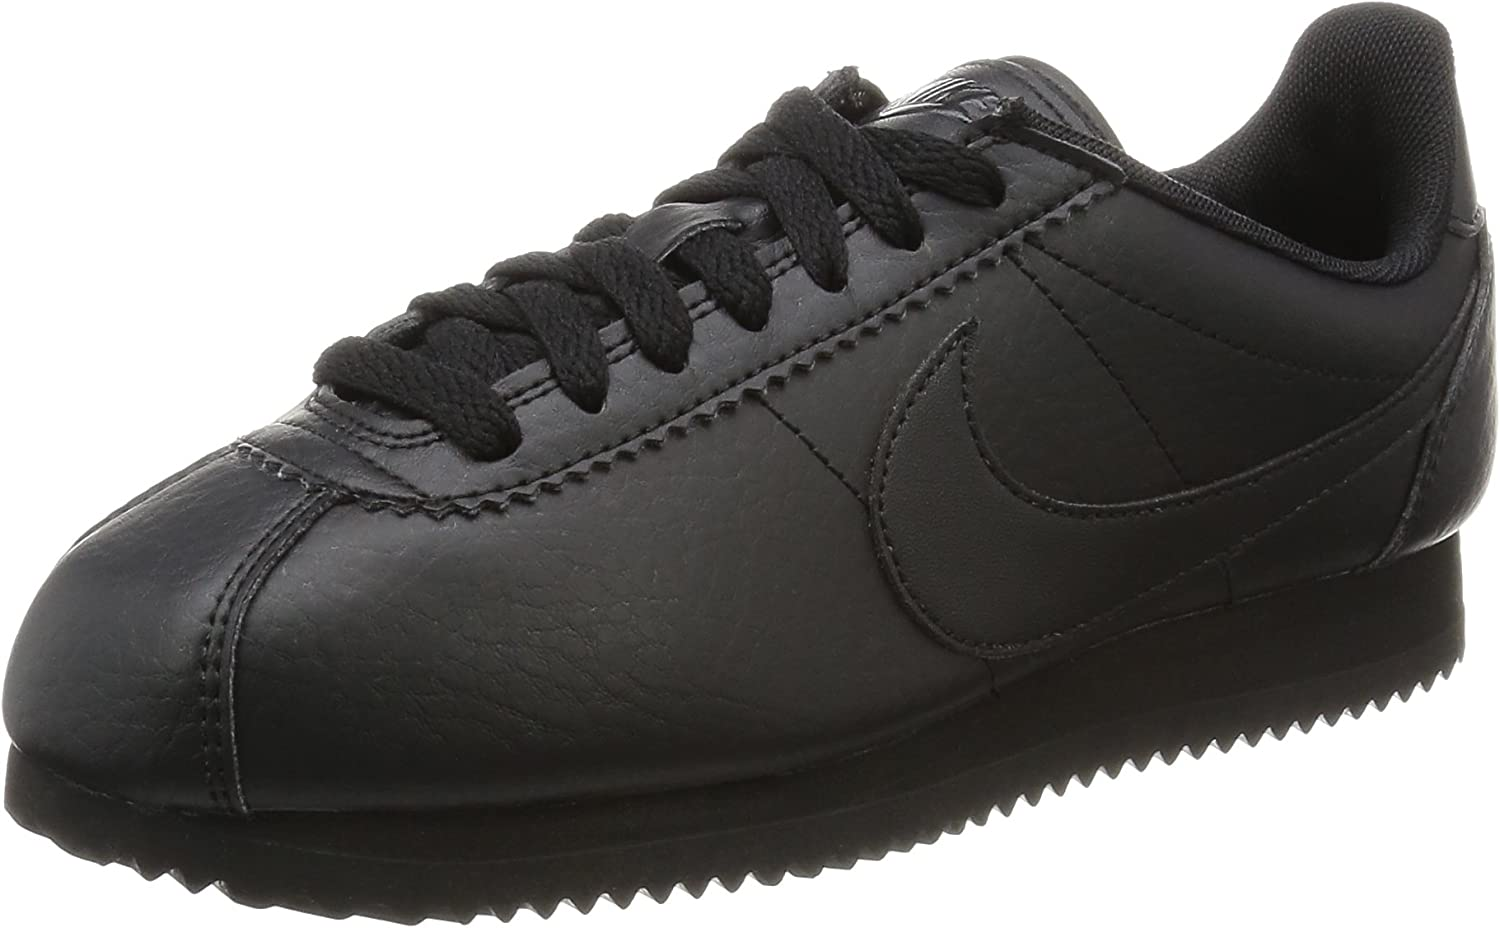 Nike Women s Classic Cortez Str Ankle-High Running Shoe